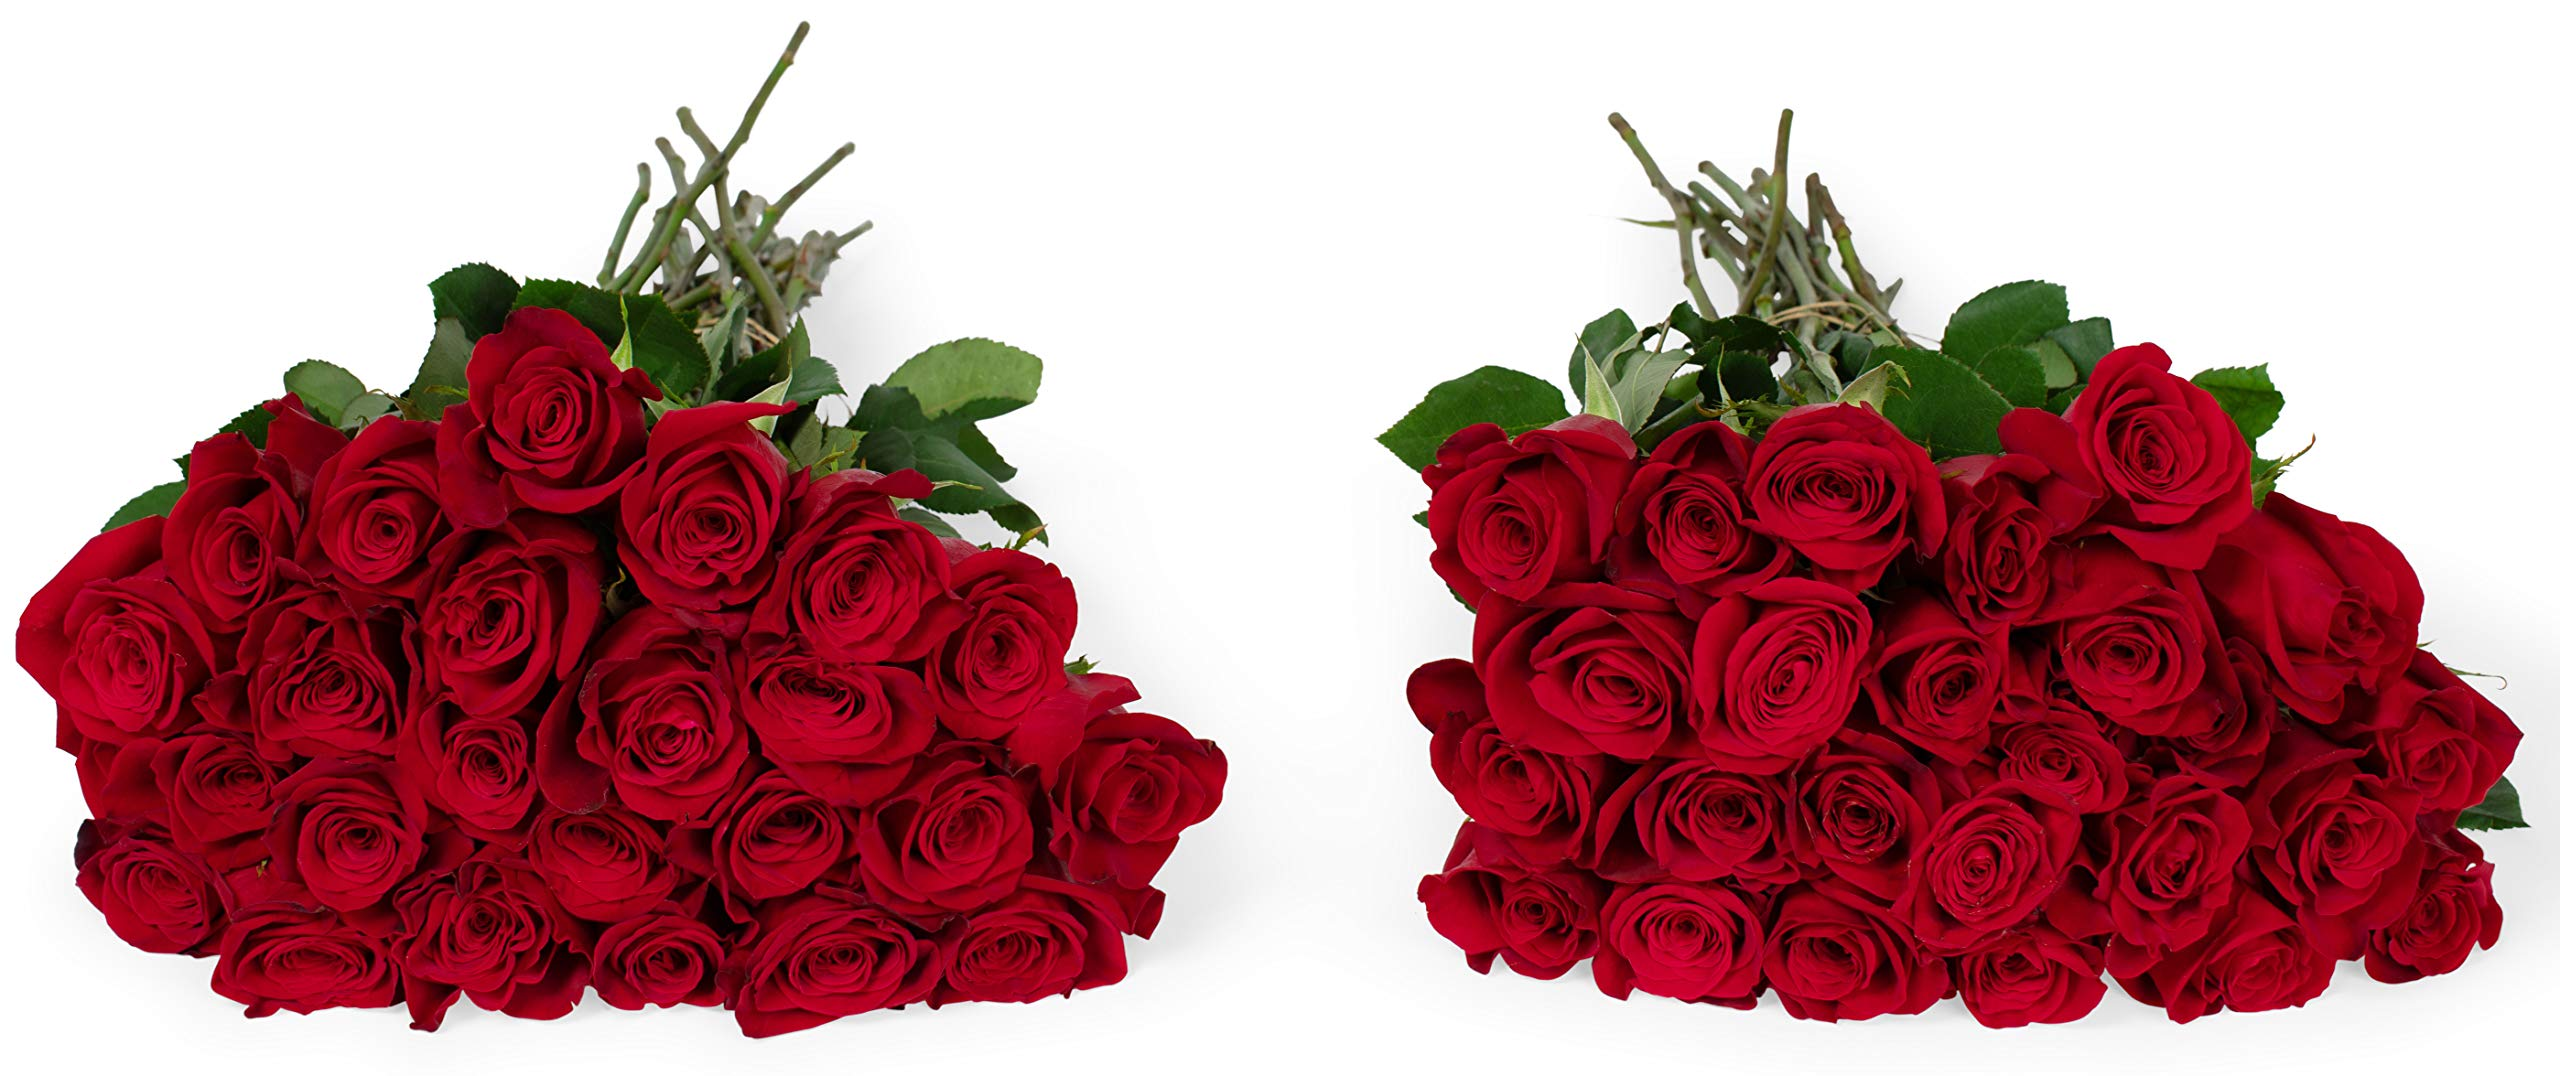 Benchmark Bouquets 50 Red Roses Farm Direct (Fresh Cut Flowers) by Benchmark Bouquets